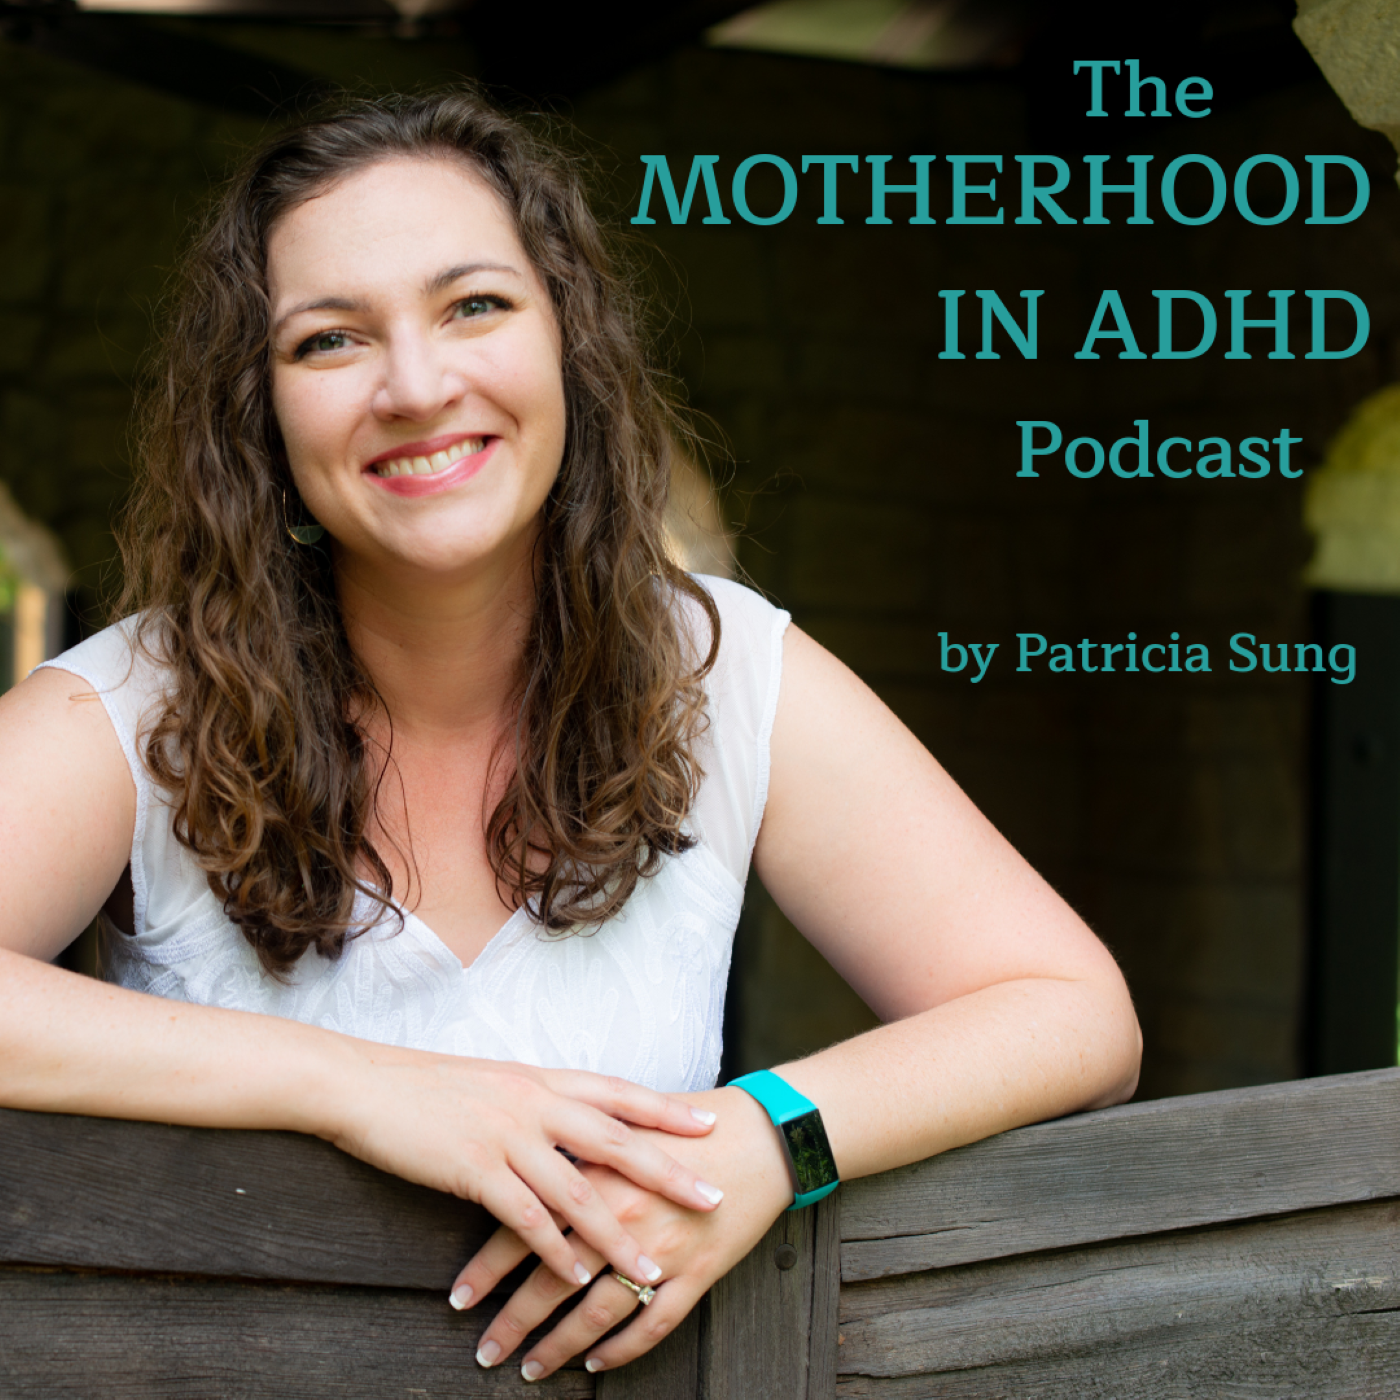 Motherhood in ADHD – Parenting with ADHD, Productivity Tips, Brain based Science, Attention Deficit Hyperactivity Disorder Education to Help Moms with Adult ADHD